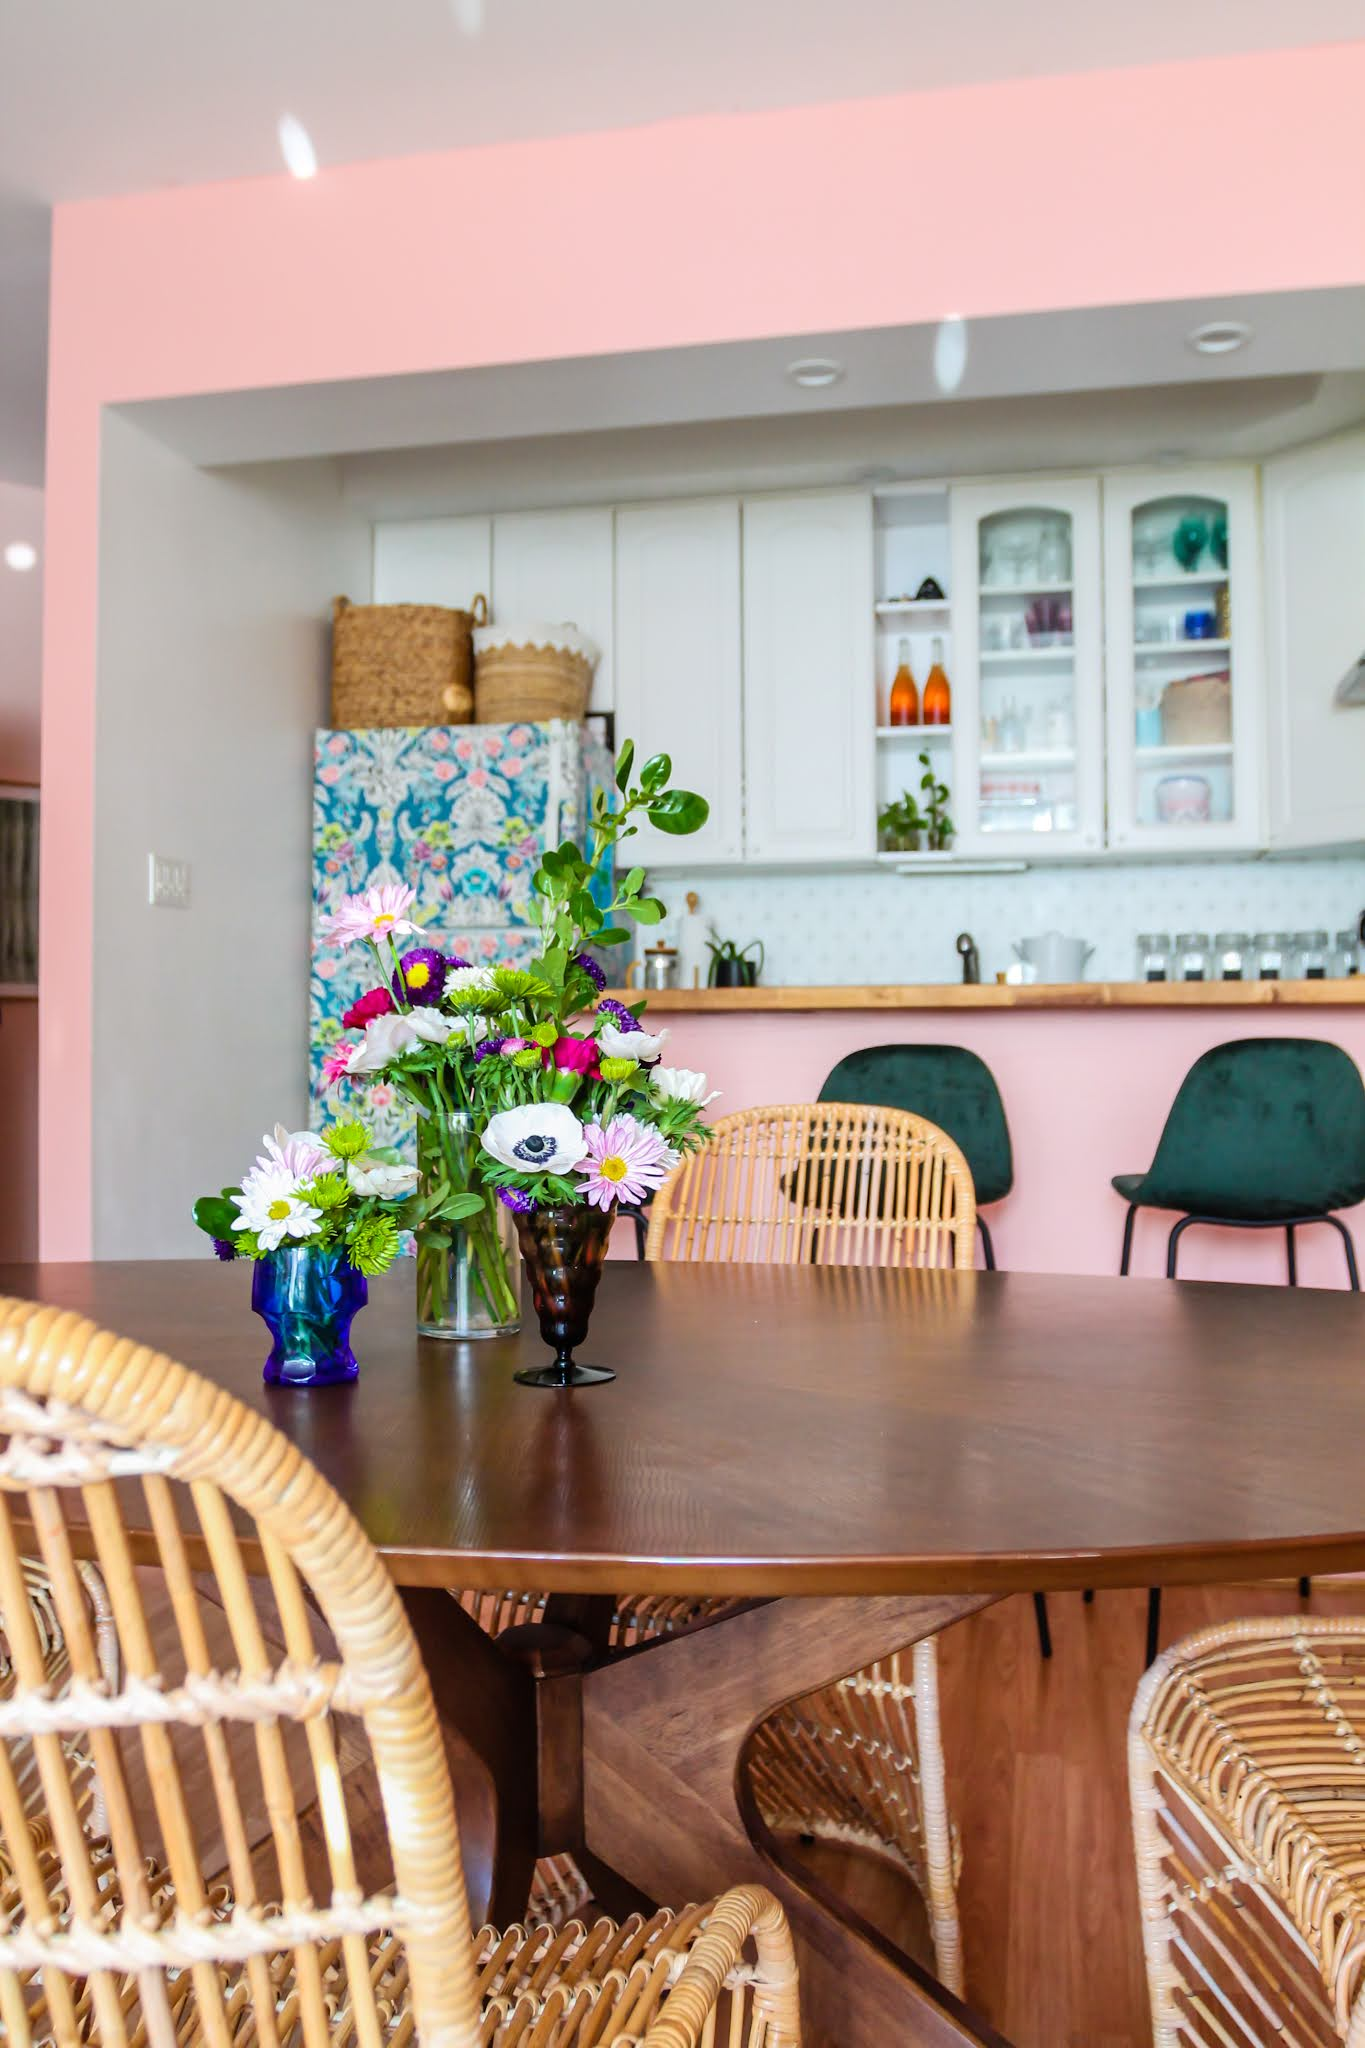 pink and green decor // green barstools // pink kitchen // diy wallpaper fridge // pink and green kitchen // colorful homes // Megan Zietz  Apartment // TfDiaries // pink and green room // pink and green Inspo // barstool inspo // velvet barstools // in mod Sigfred barstool // Green Velvet Mid Century Barstools // pink kitchen // pink room // boho decor